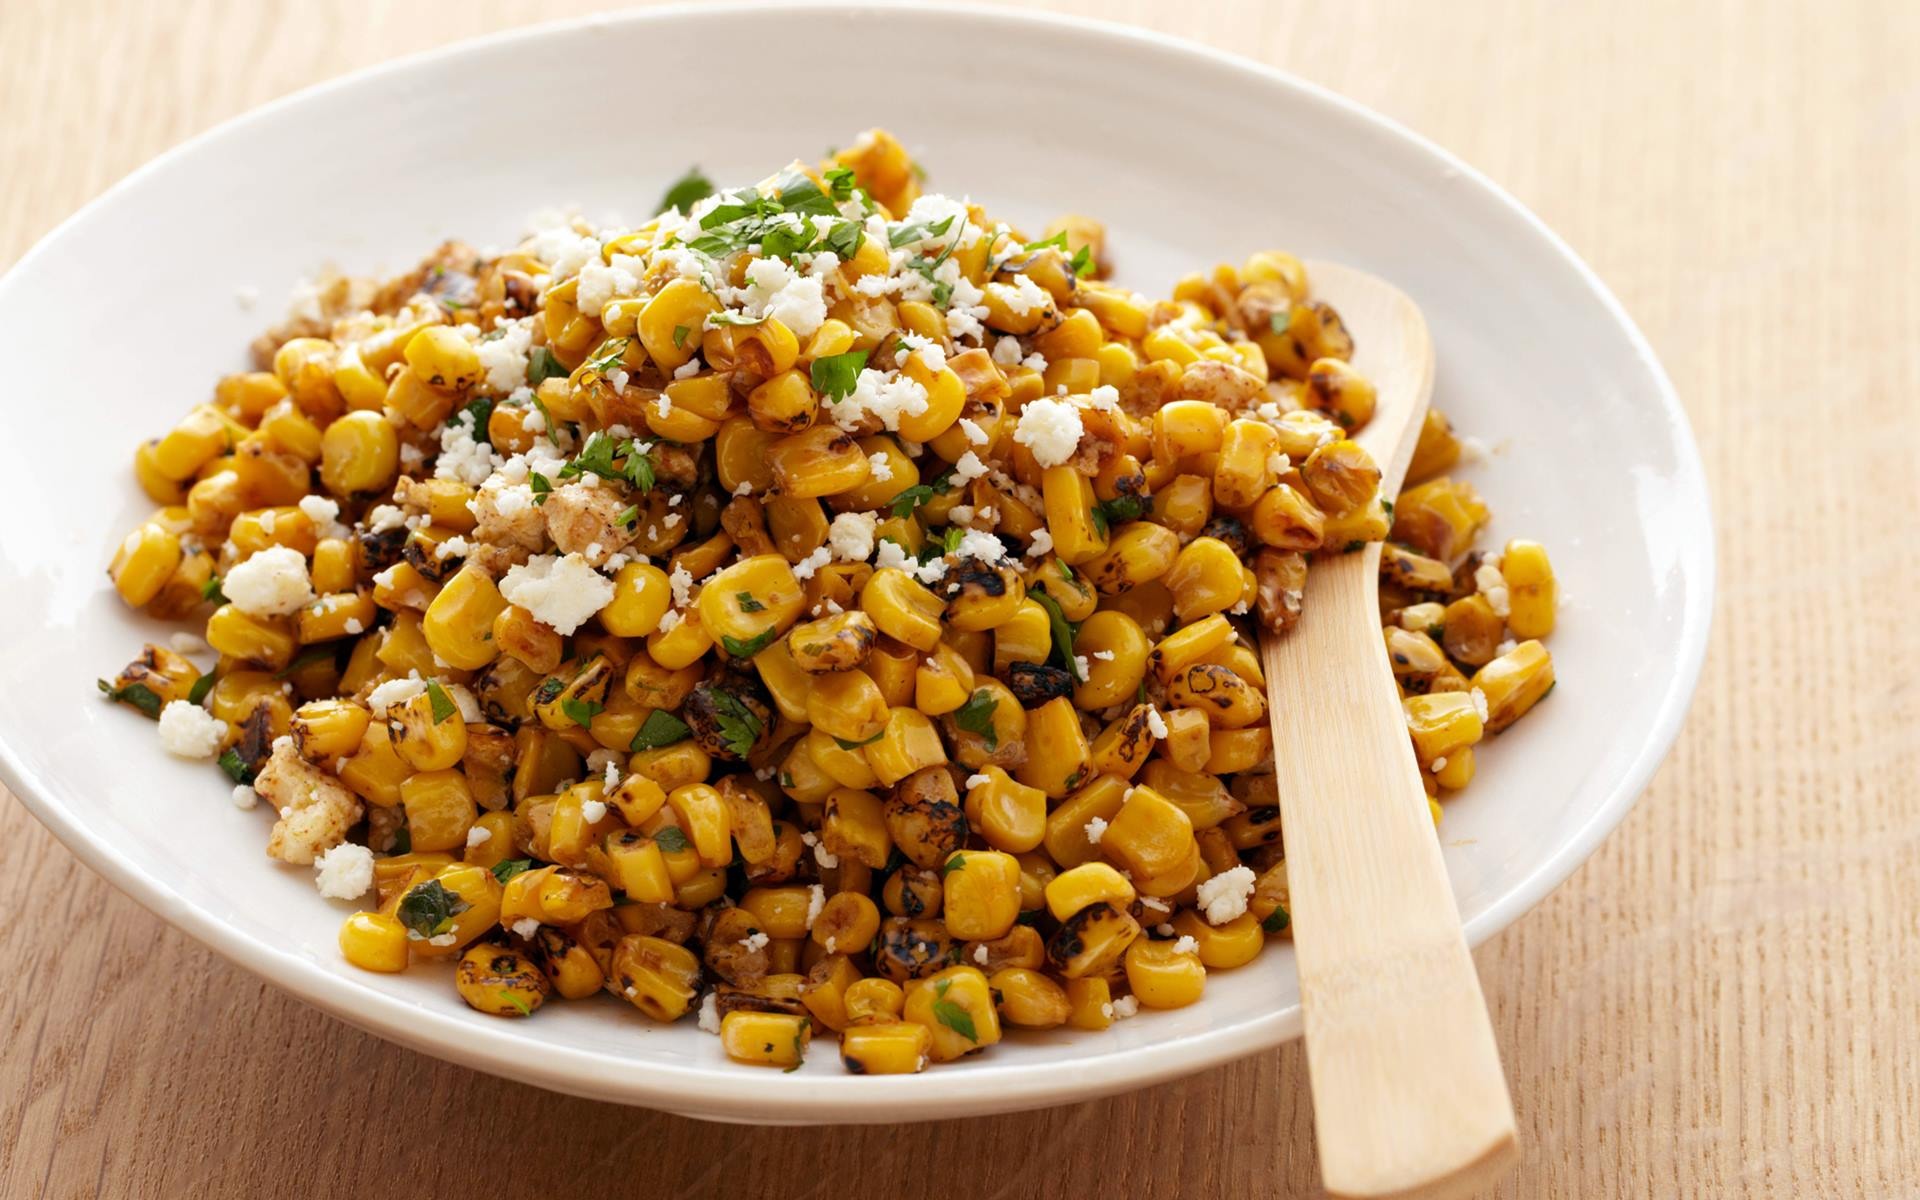 Sweet And Hot Corn Salad Hd Wallpaper Images Photos Download